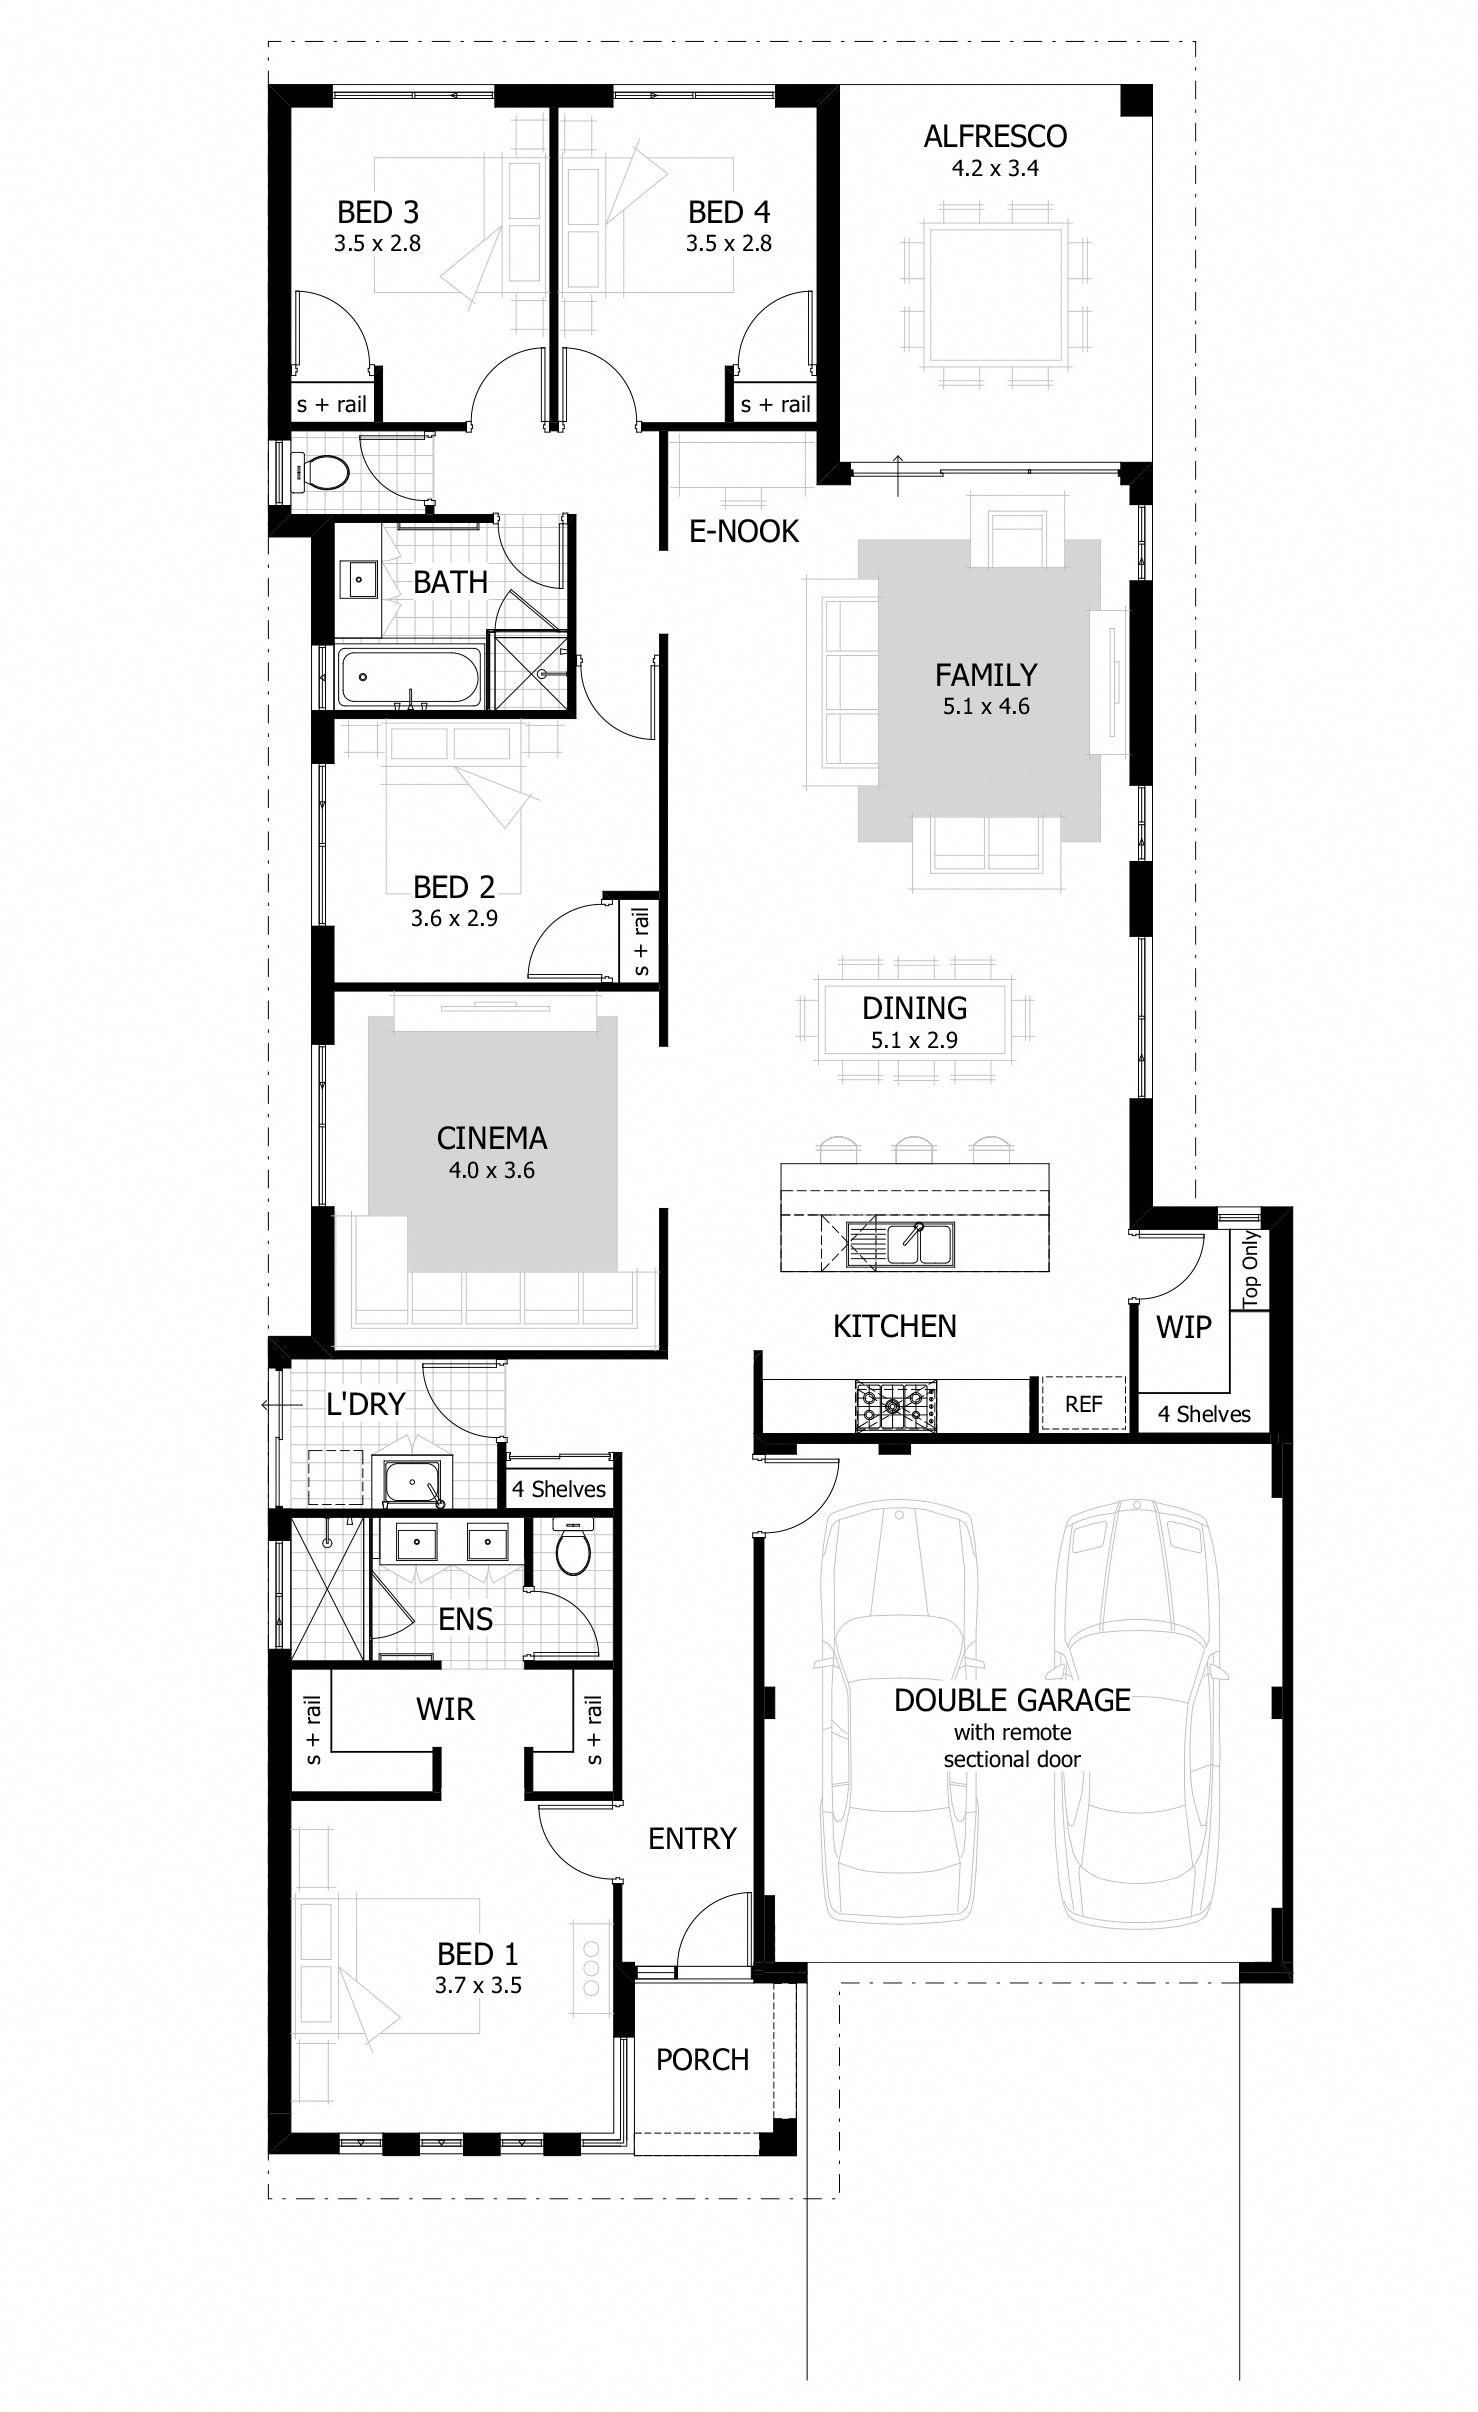 Best House Plans Design Ideas For Home Wonderful Narrow Lot House Plans Single Story Modern Narrow House Plans Narrow Lot House Plans Modern House Floor Plans